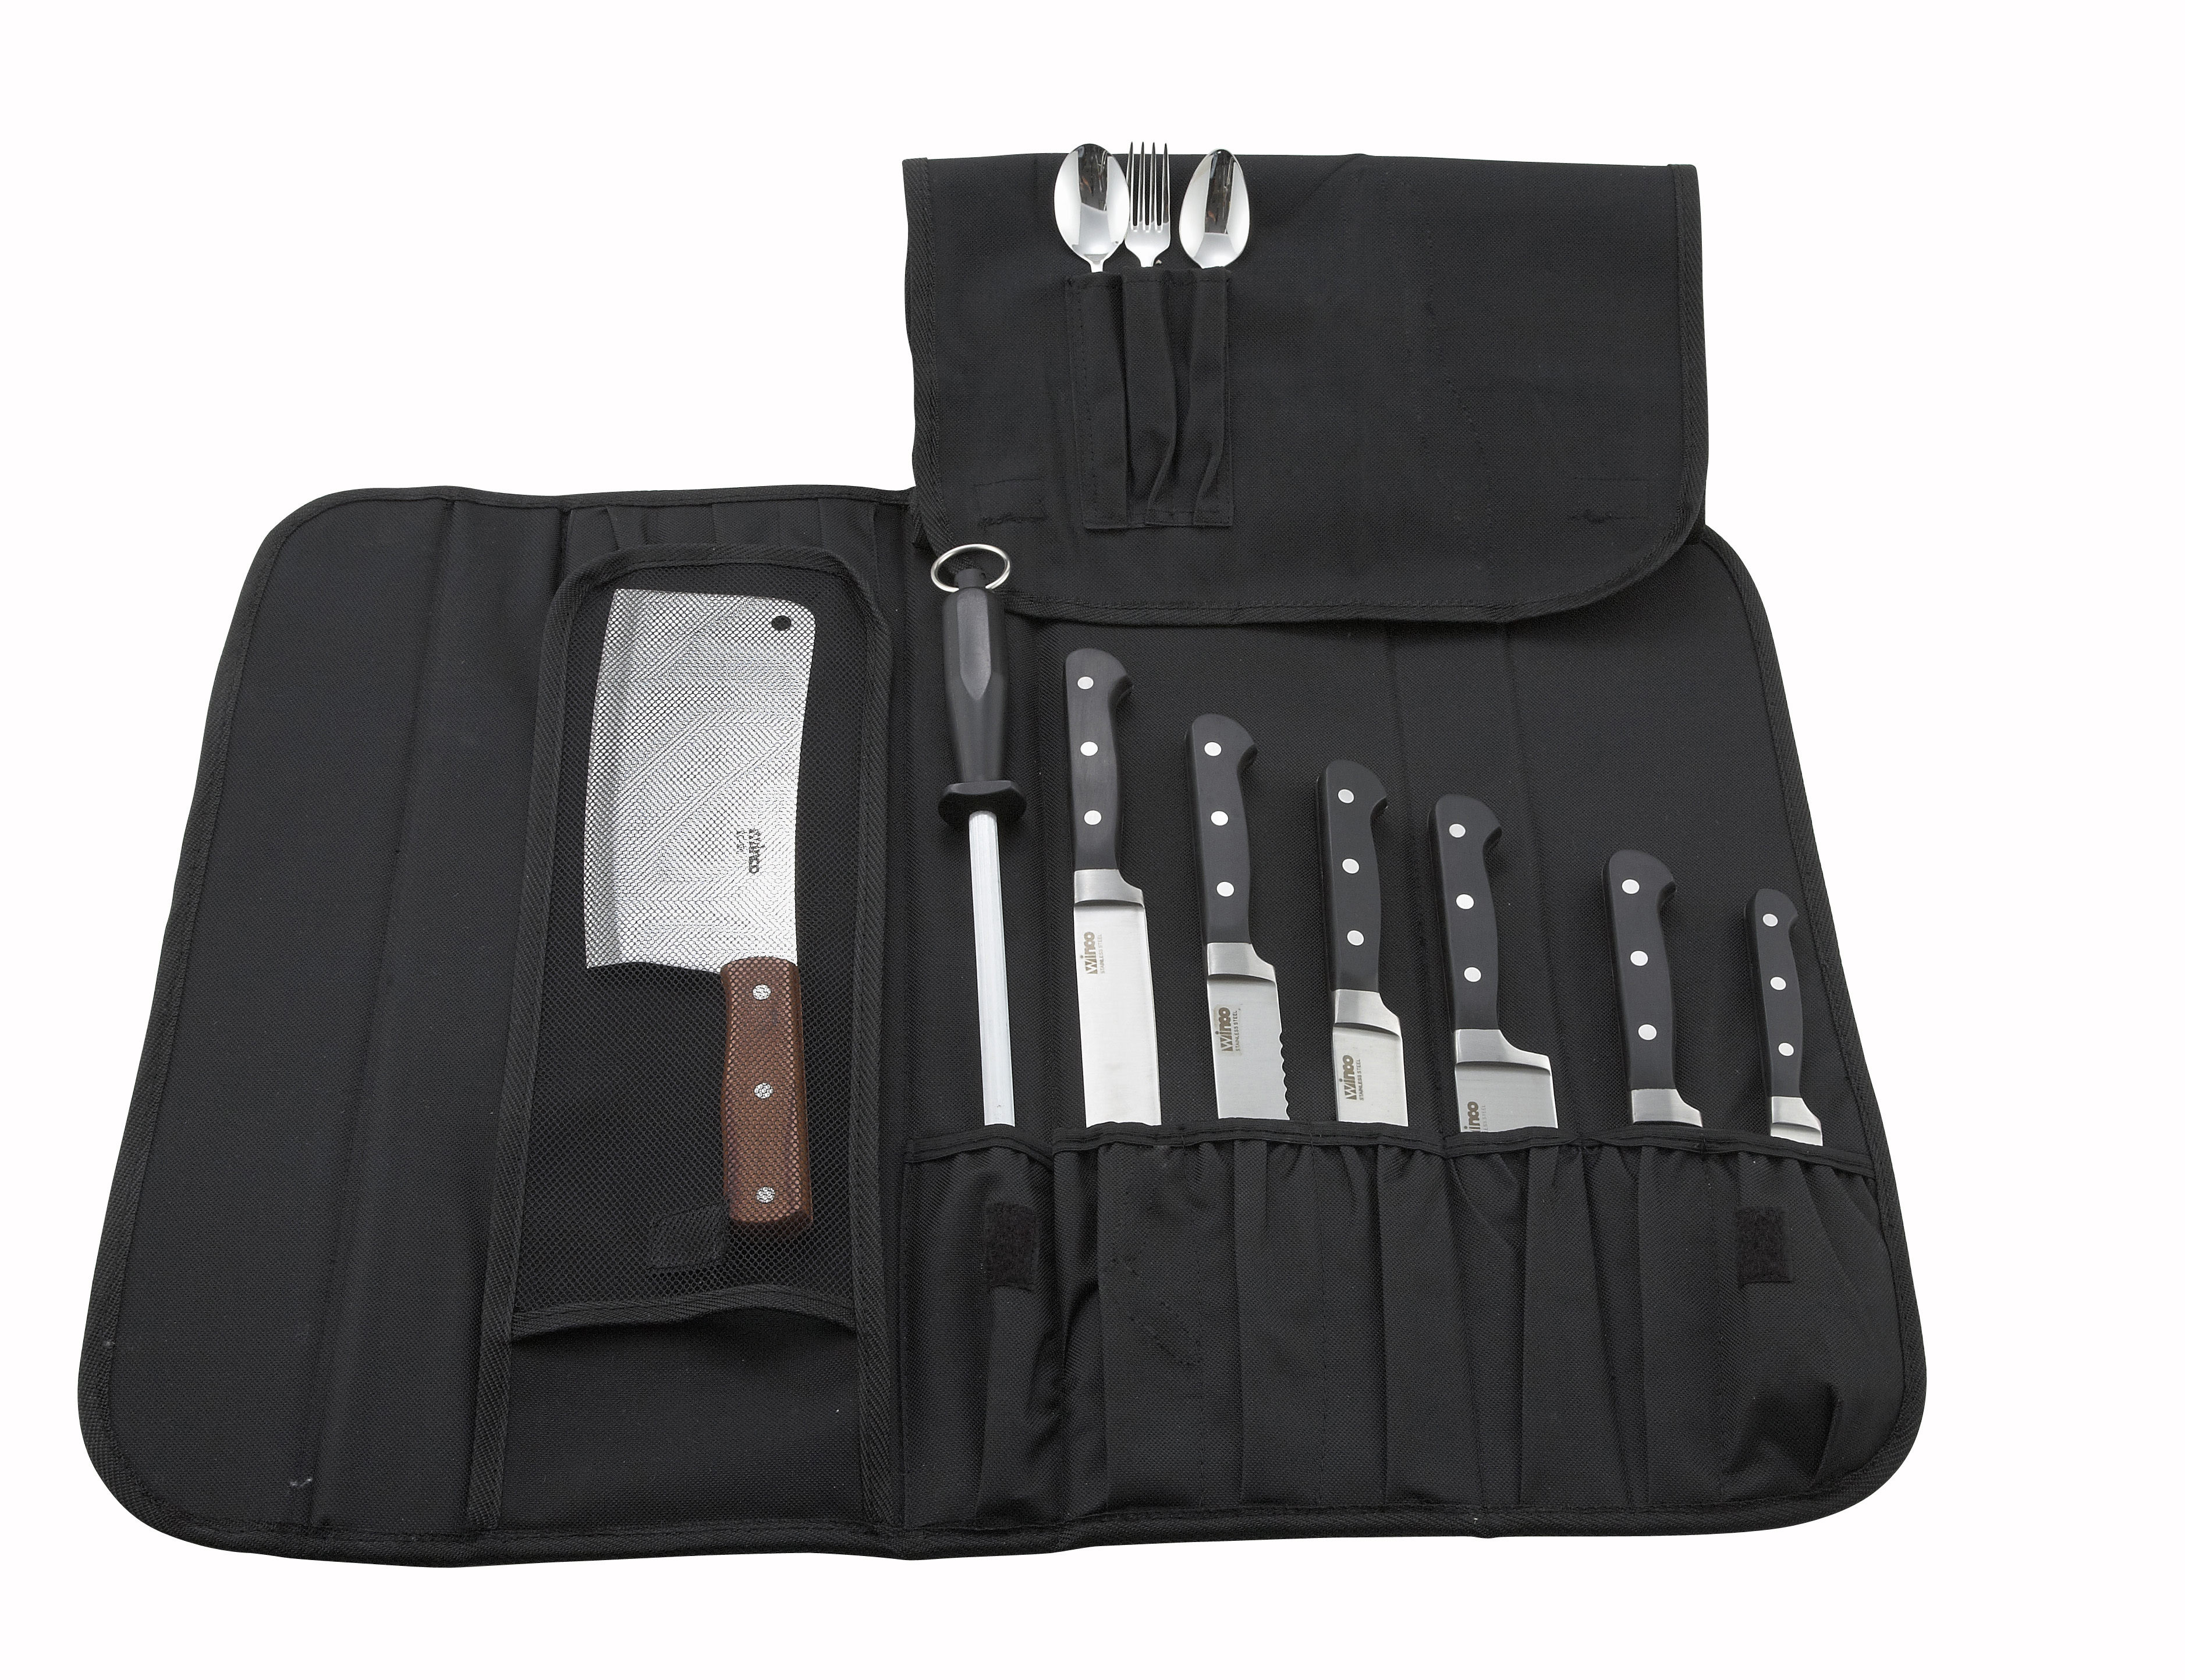 10-Piece Cutlery Knife Bag, Black